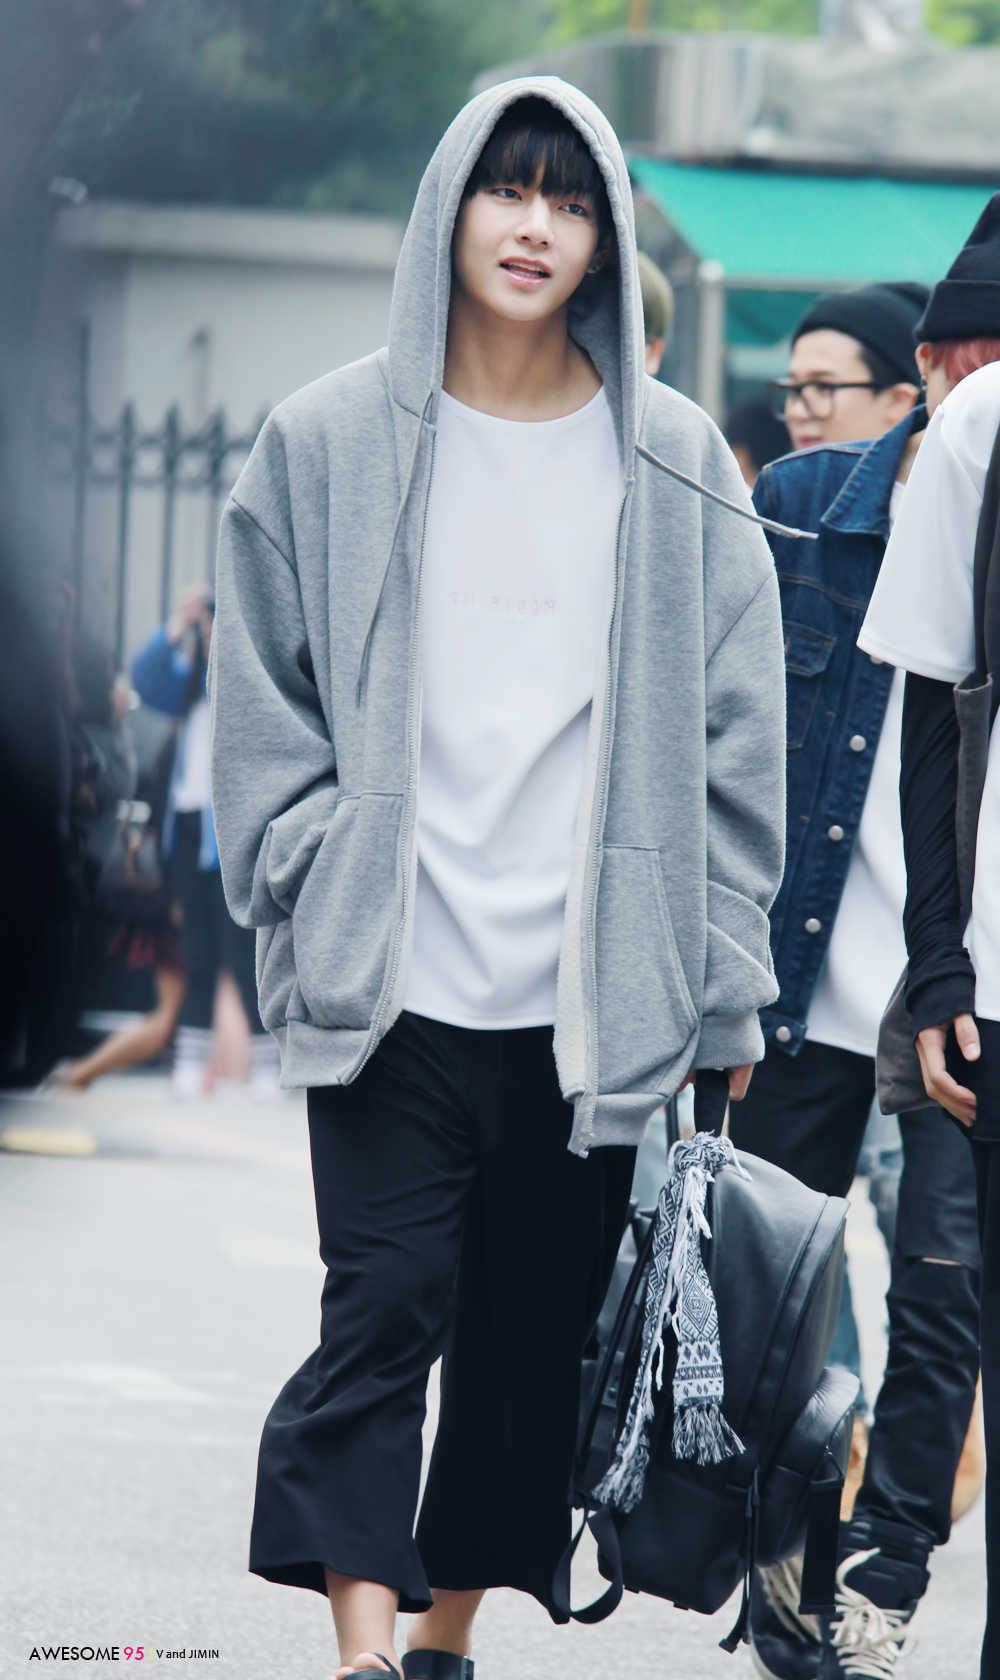 Taehyung starter kit street fashion look http://bts0715.tumblr.com/post/139801148060/awesome95-do-not-edit